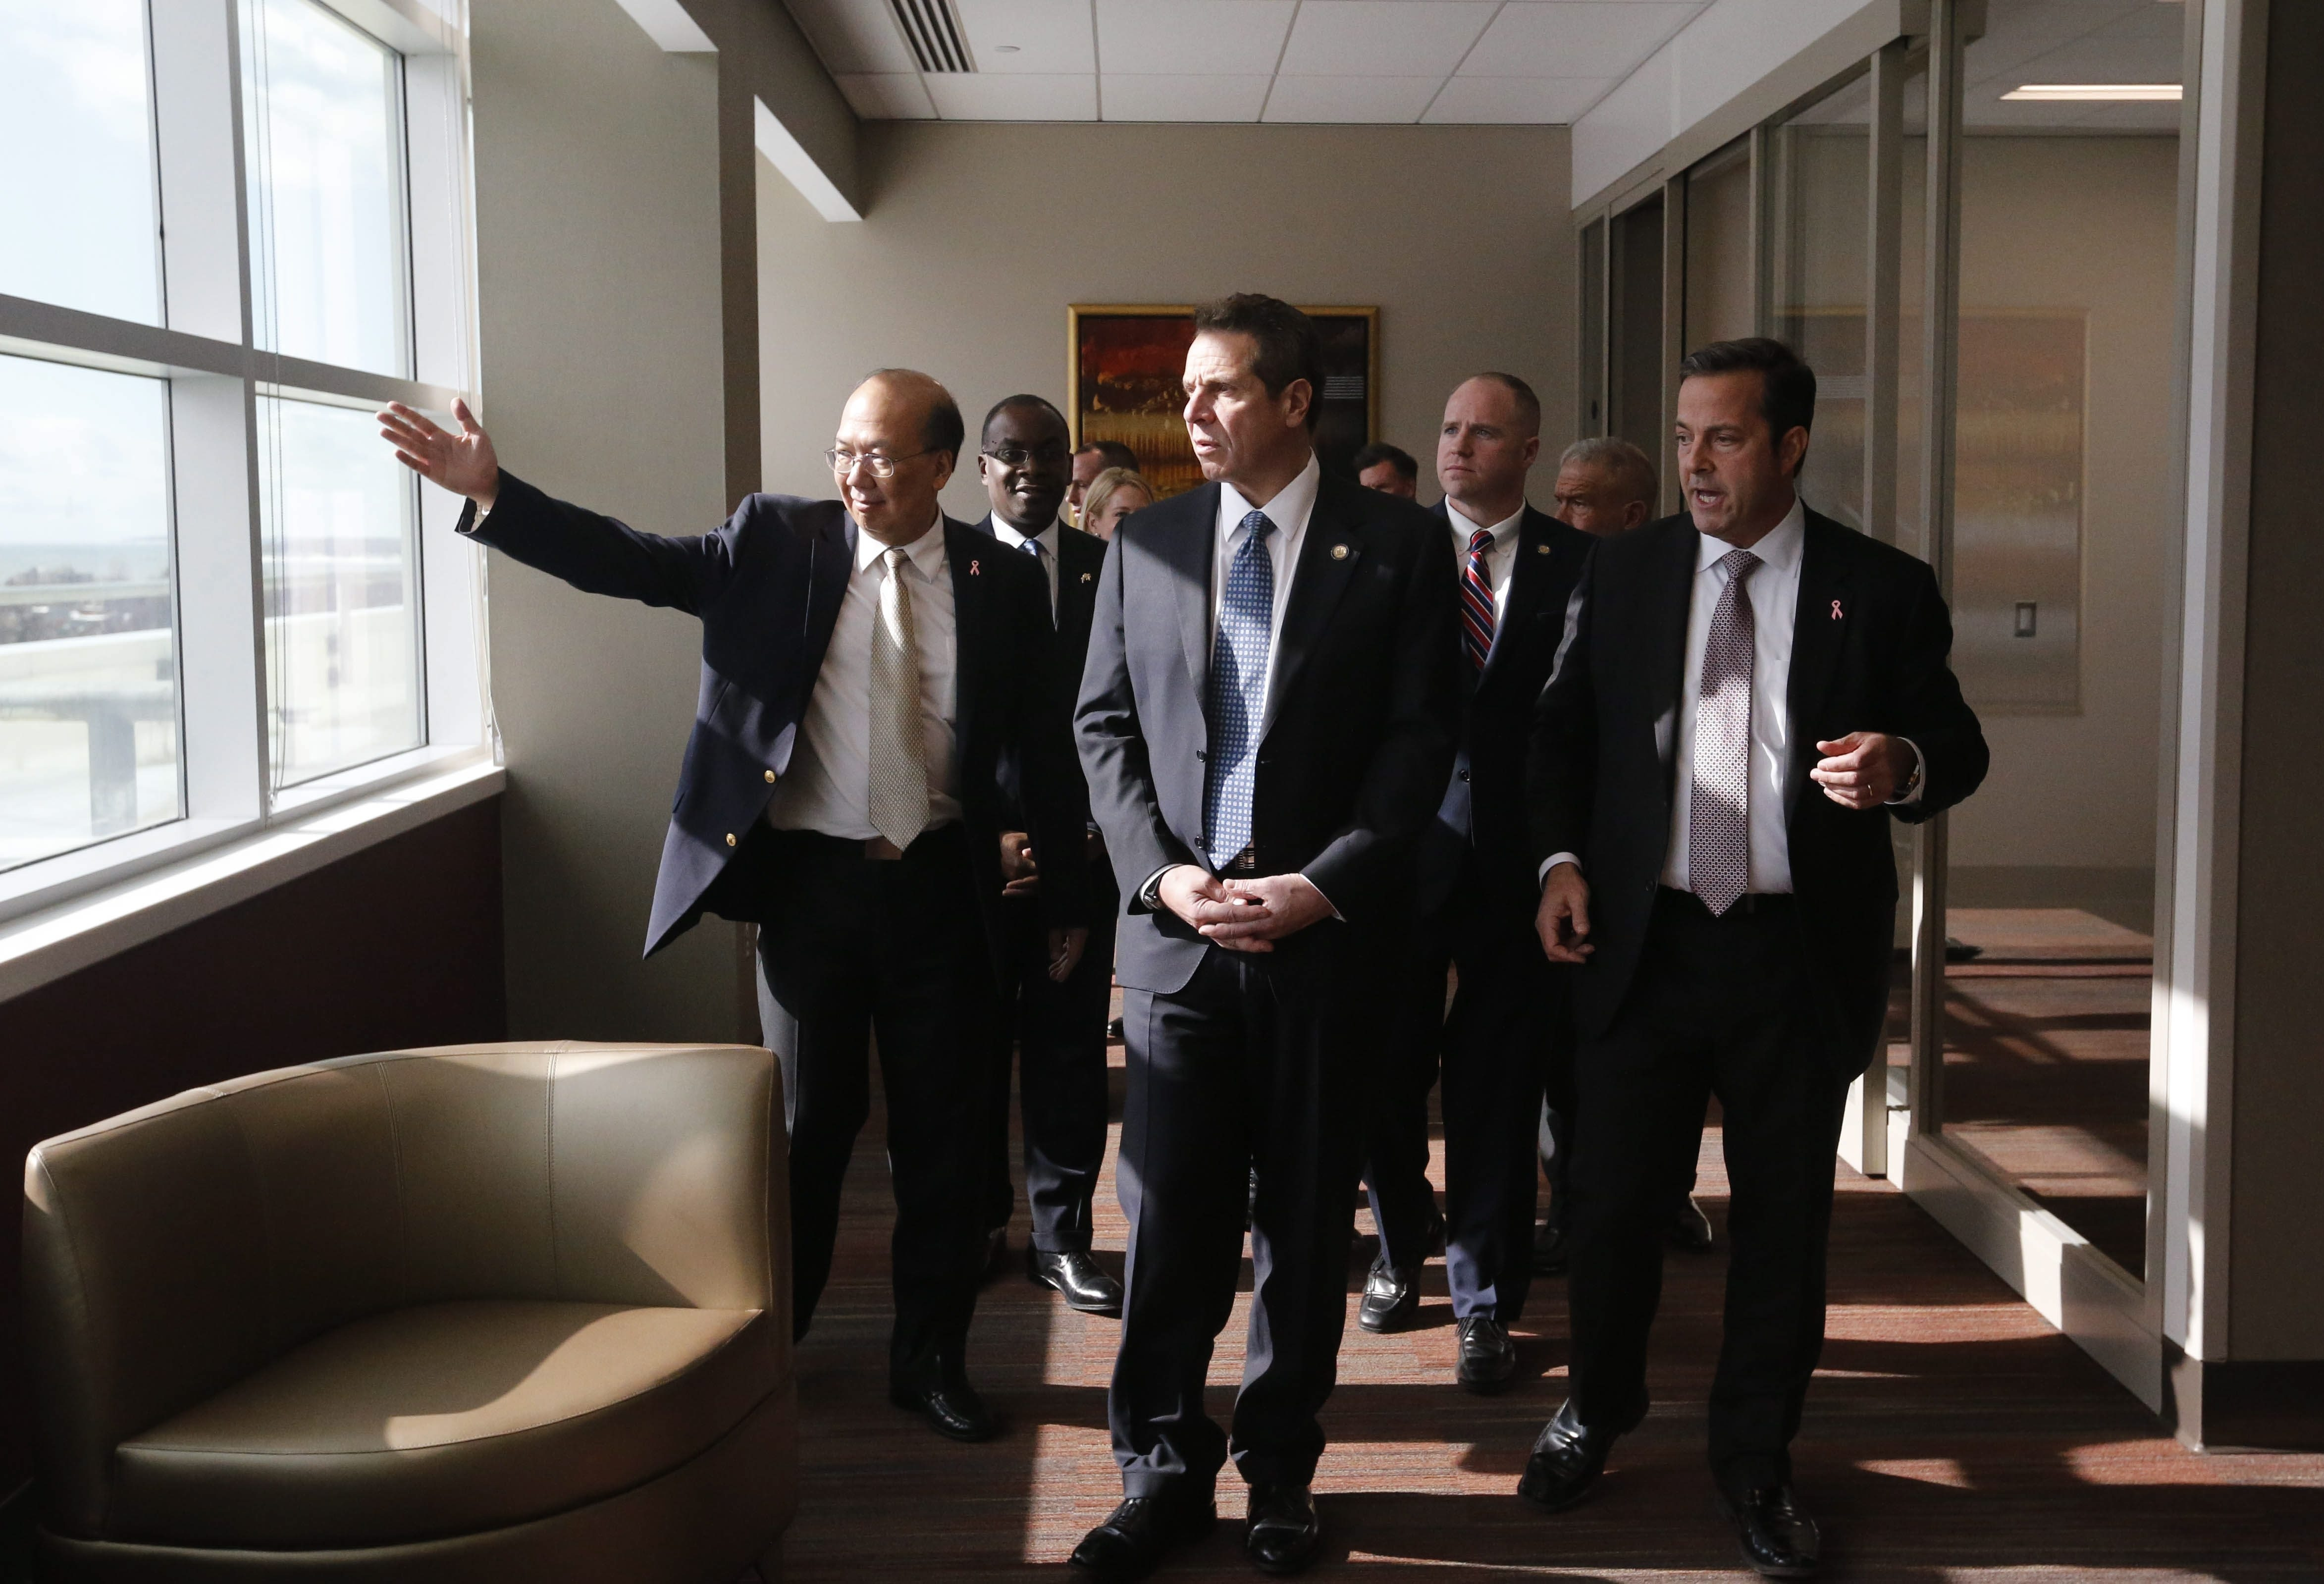 Gov. Andrew Cuomo, center, tours the new Athenex facility at Conventus in Buffalo with Athenex CEO Johnson Y. N. Lau, left, and CFO and COO Flint D. Besecker, right, Thursday, Feb. 11, 2016.  (Derek Gee/Buffalo News)